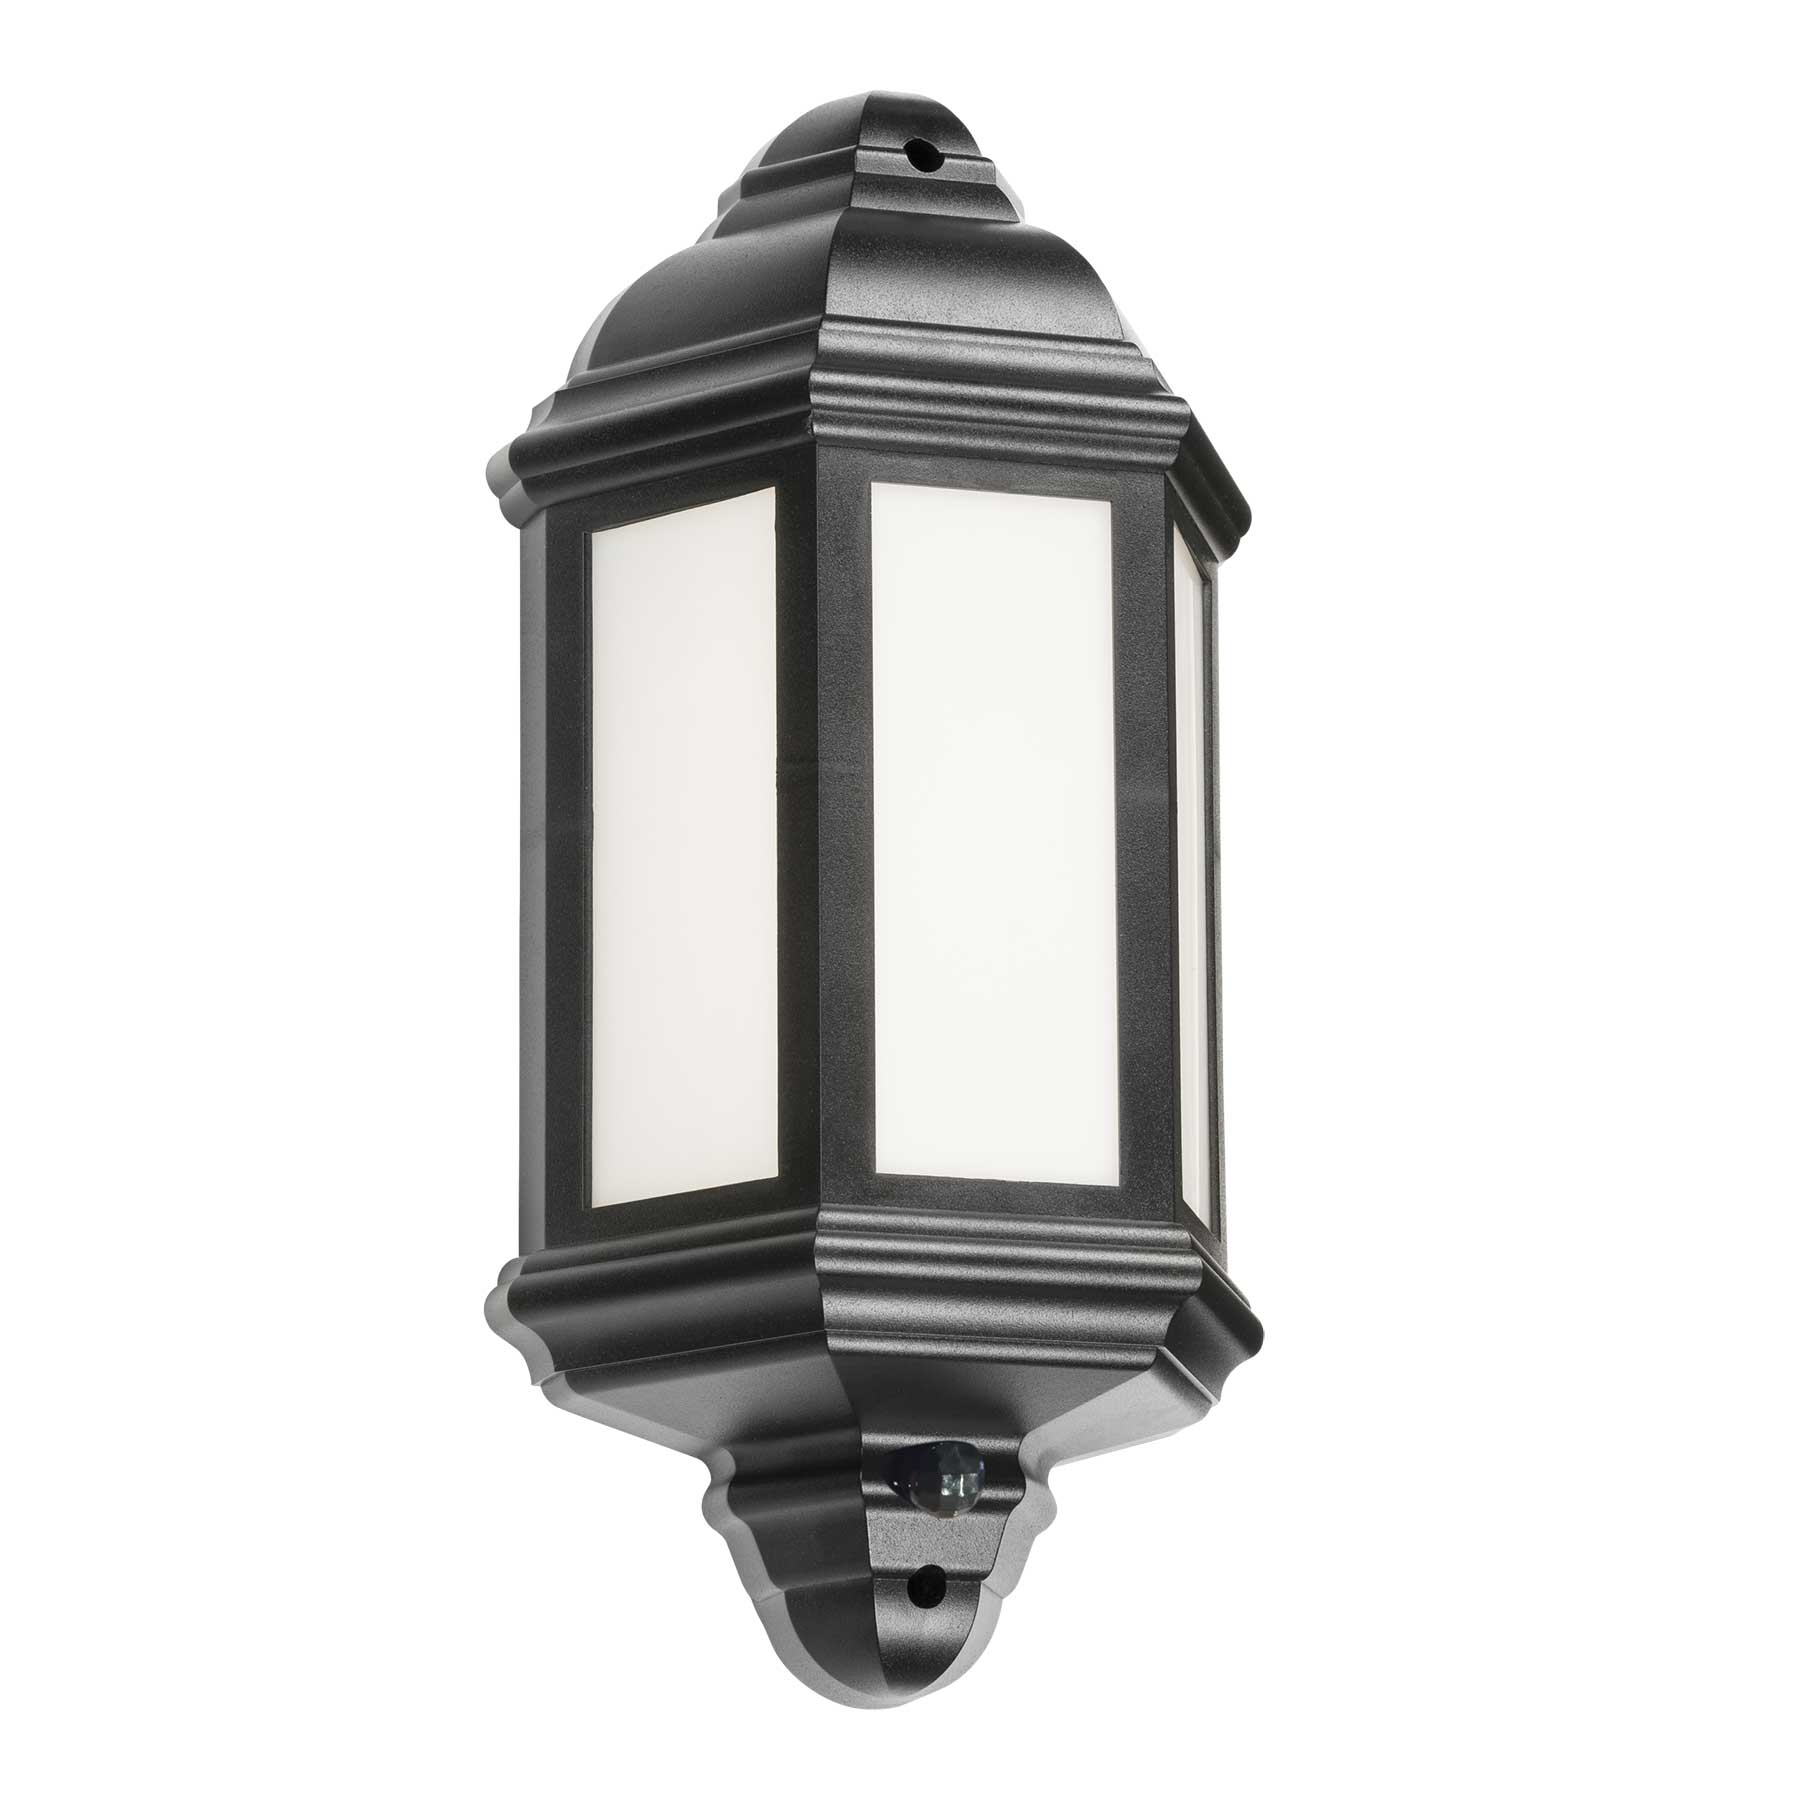 Outdoor Wall & Ceiling Lights